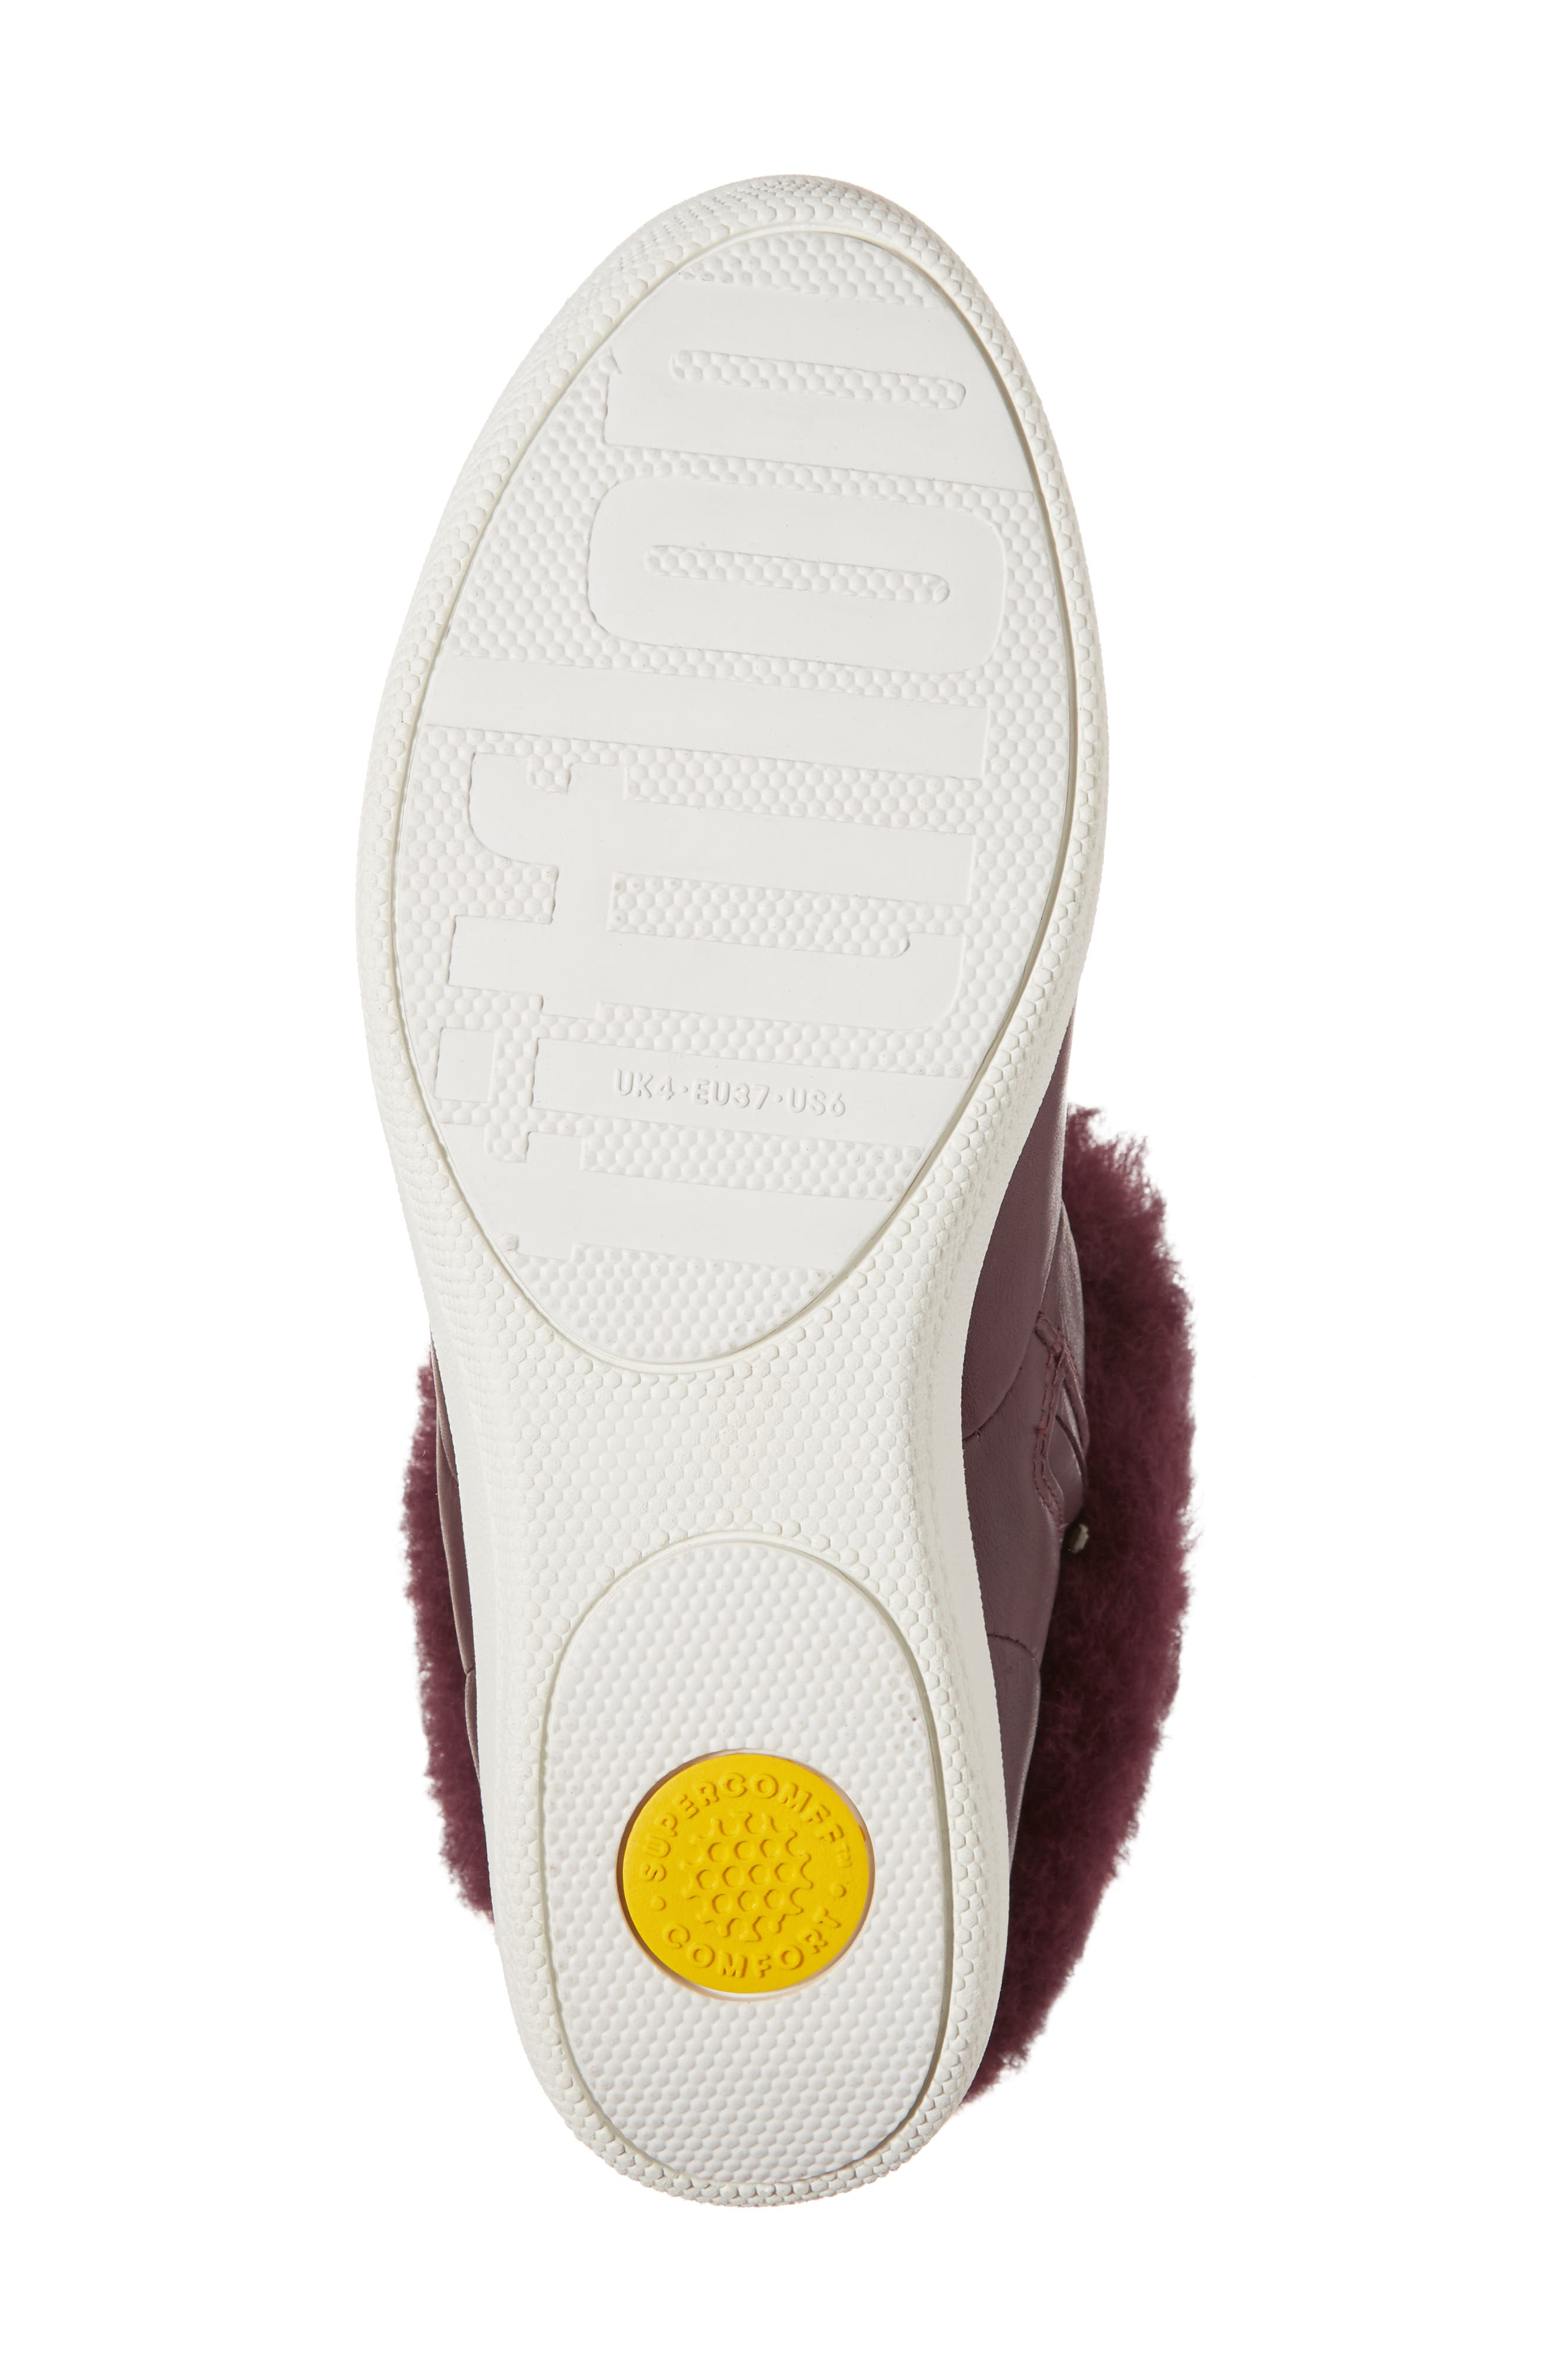 Skatebootie<sup>™</sup> with Genuine Shearling Cuff,                             Alternate thumbnail 12, color,